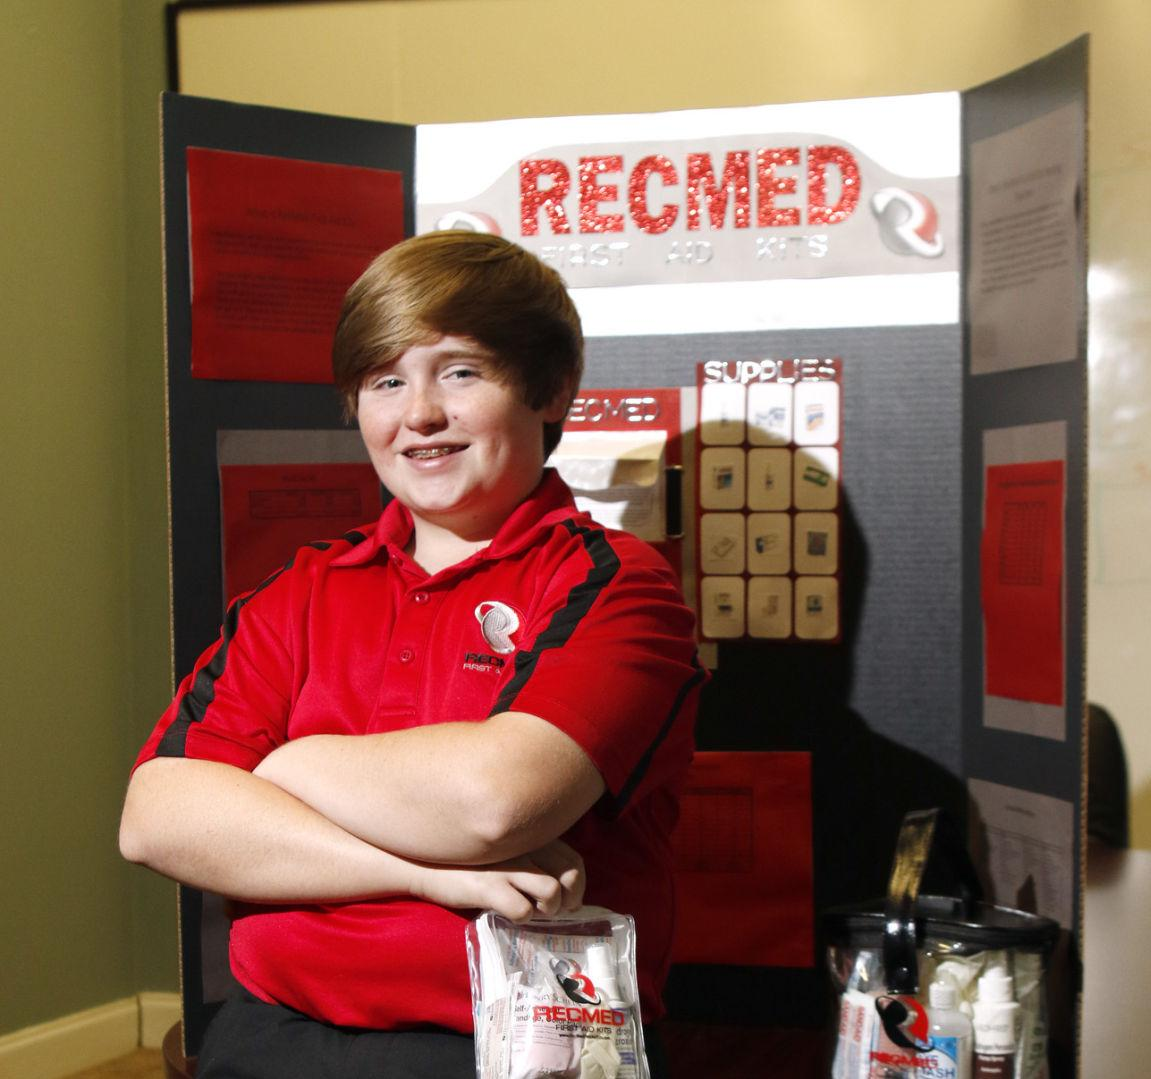 Opelika 14-year-old Receives Patent For First Aid Vending